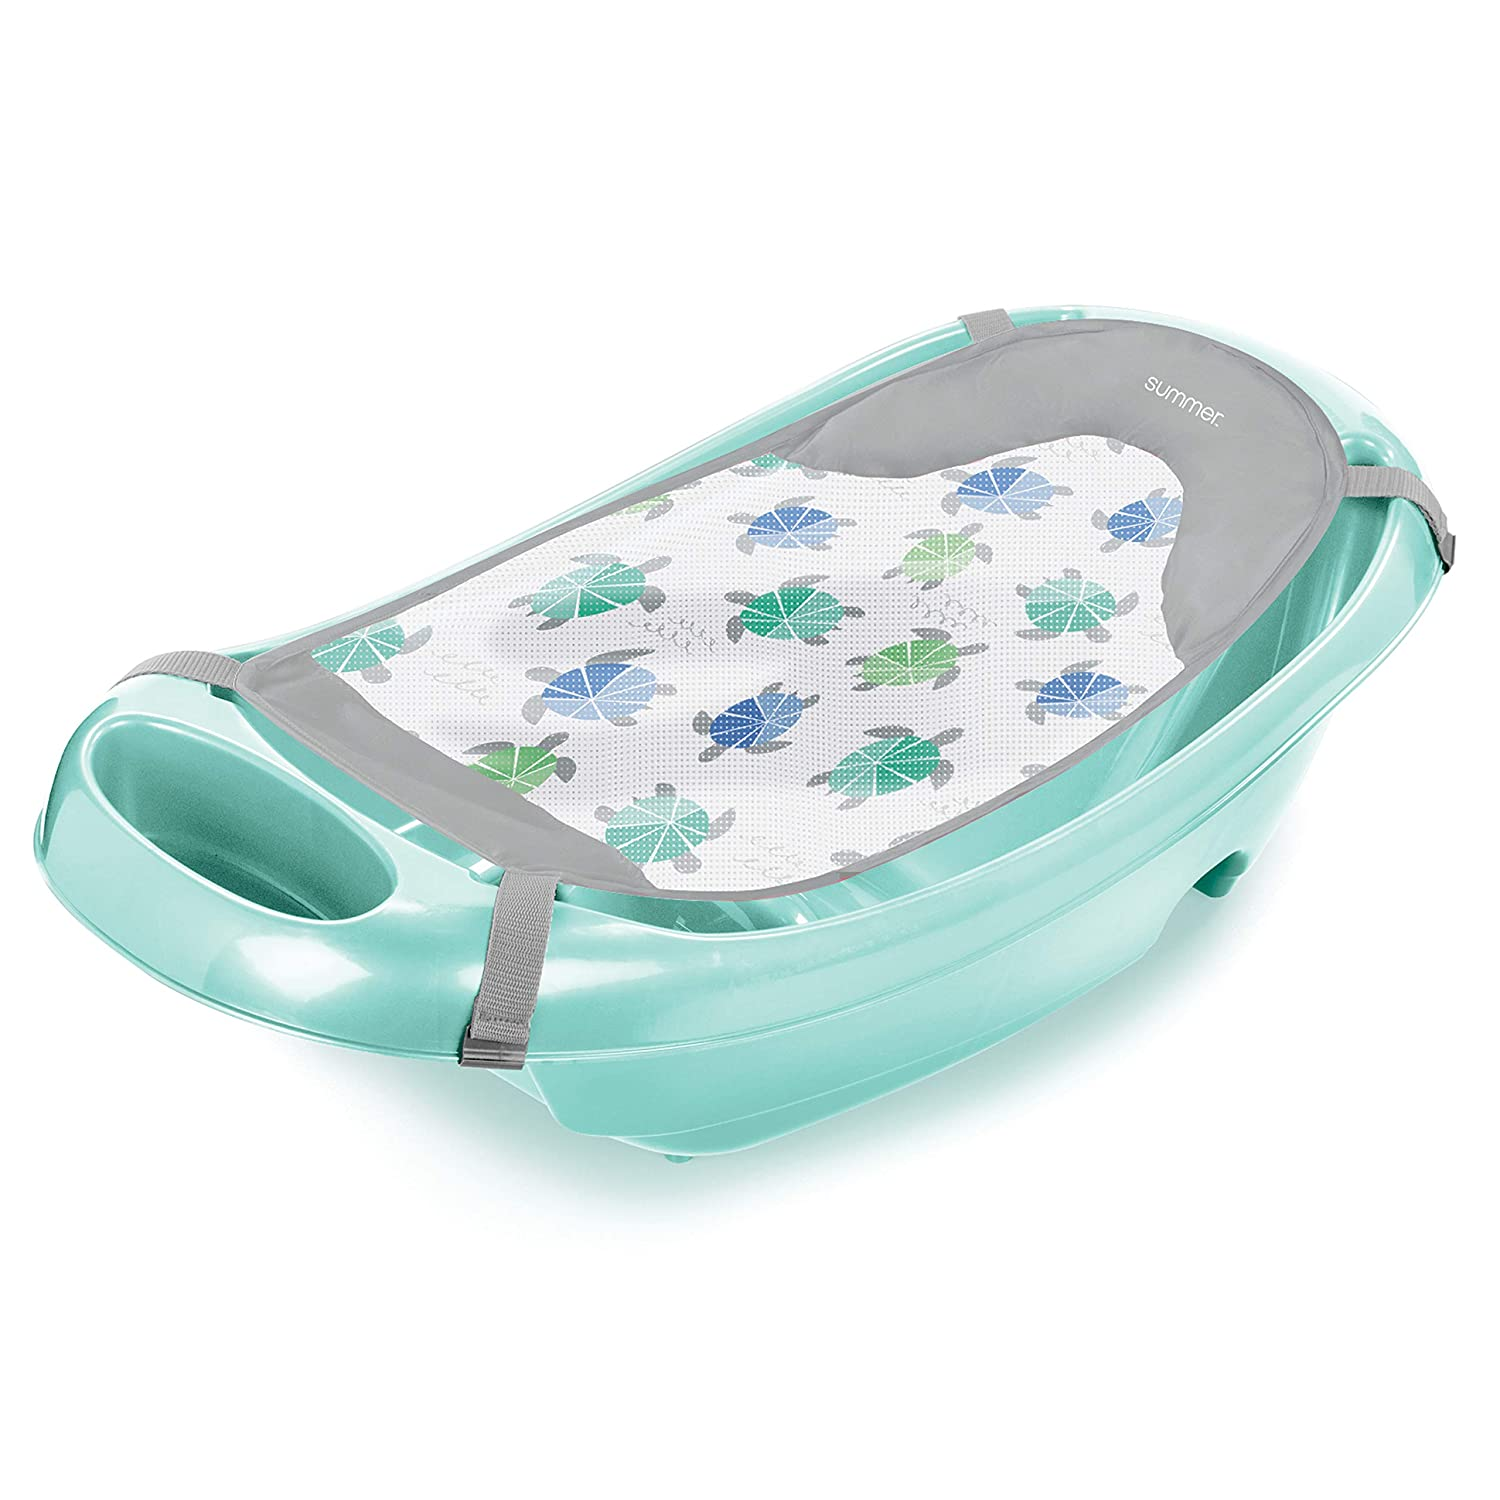 Summer Splish 'N Splash Newborn to Toddler Bath Tub, Aqua